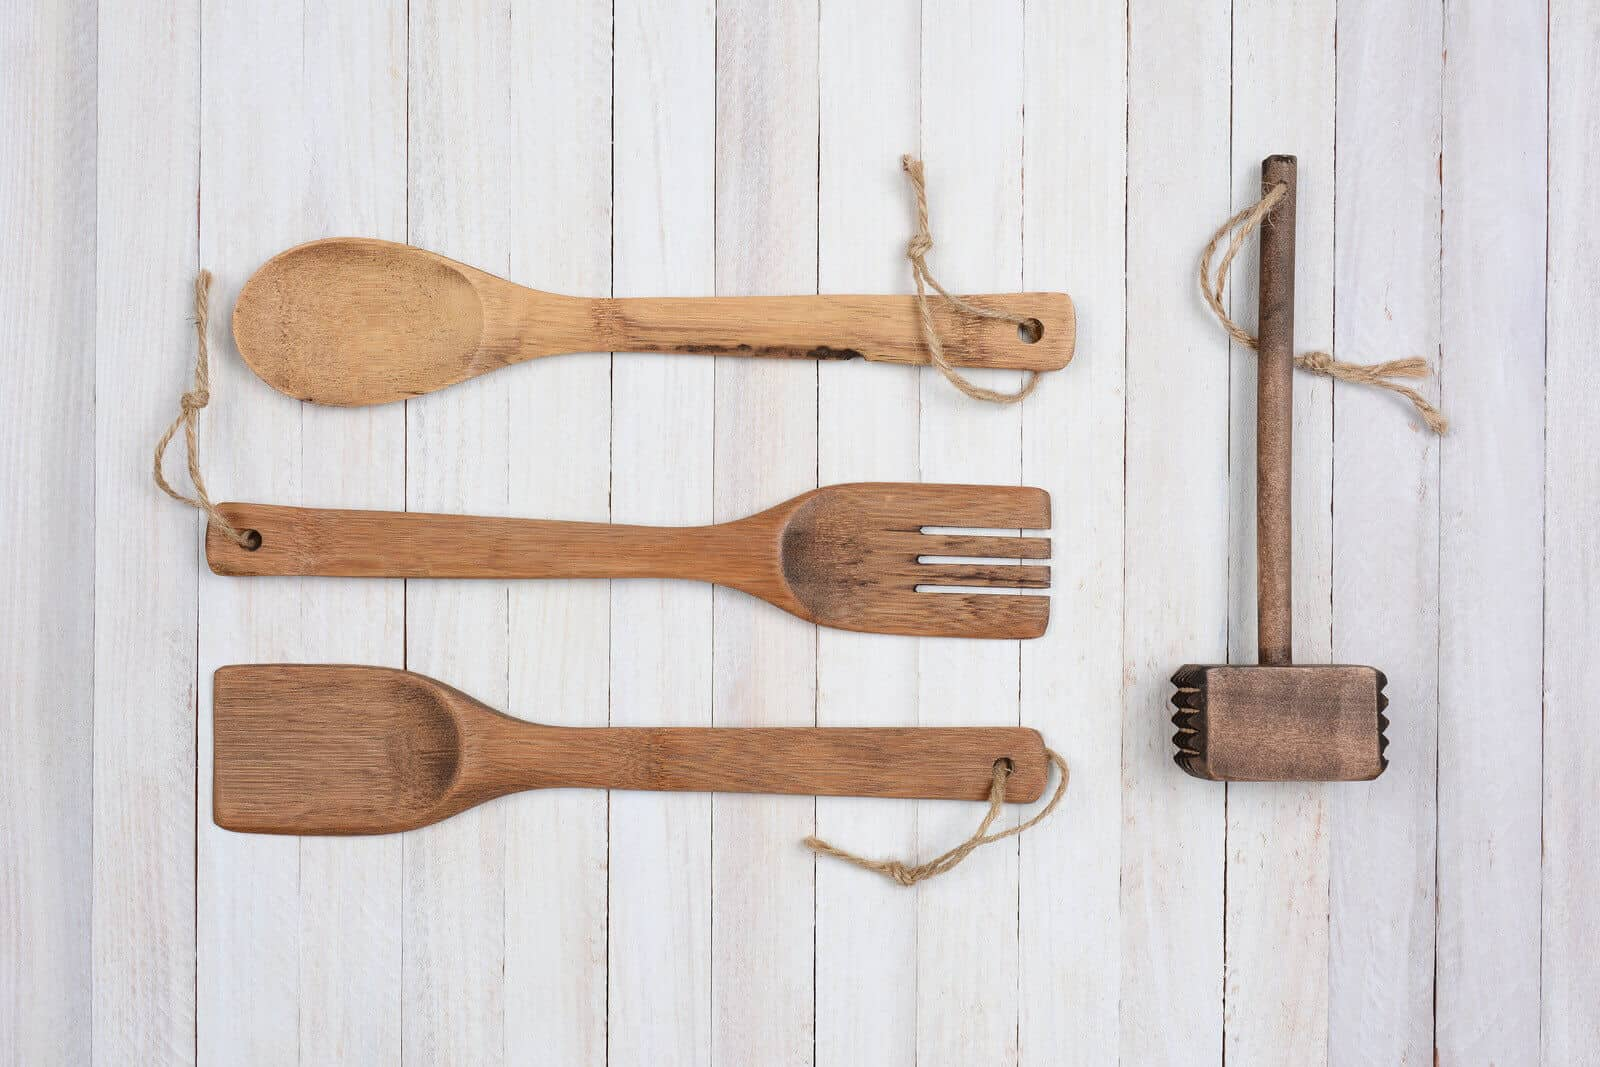 Making your own wooden utensils